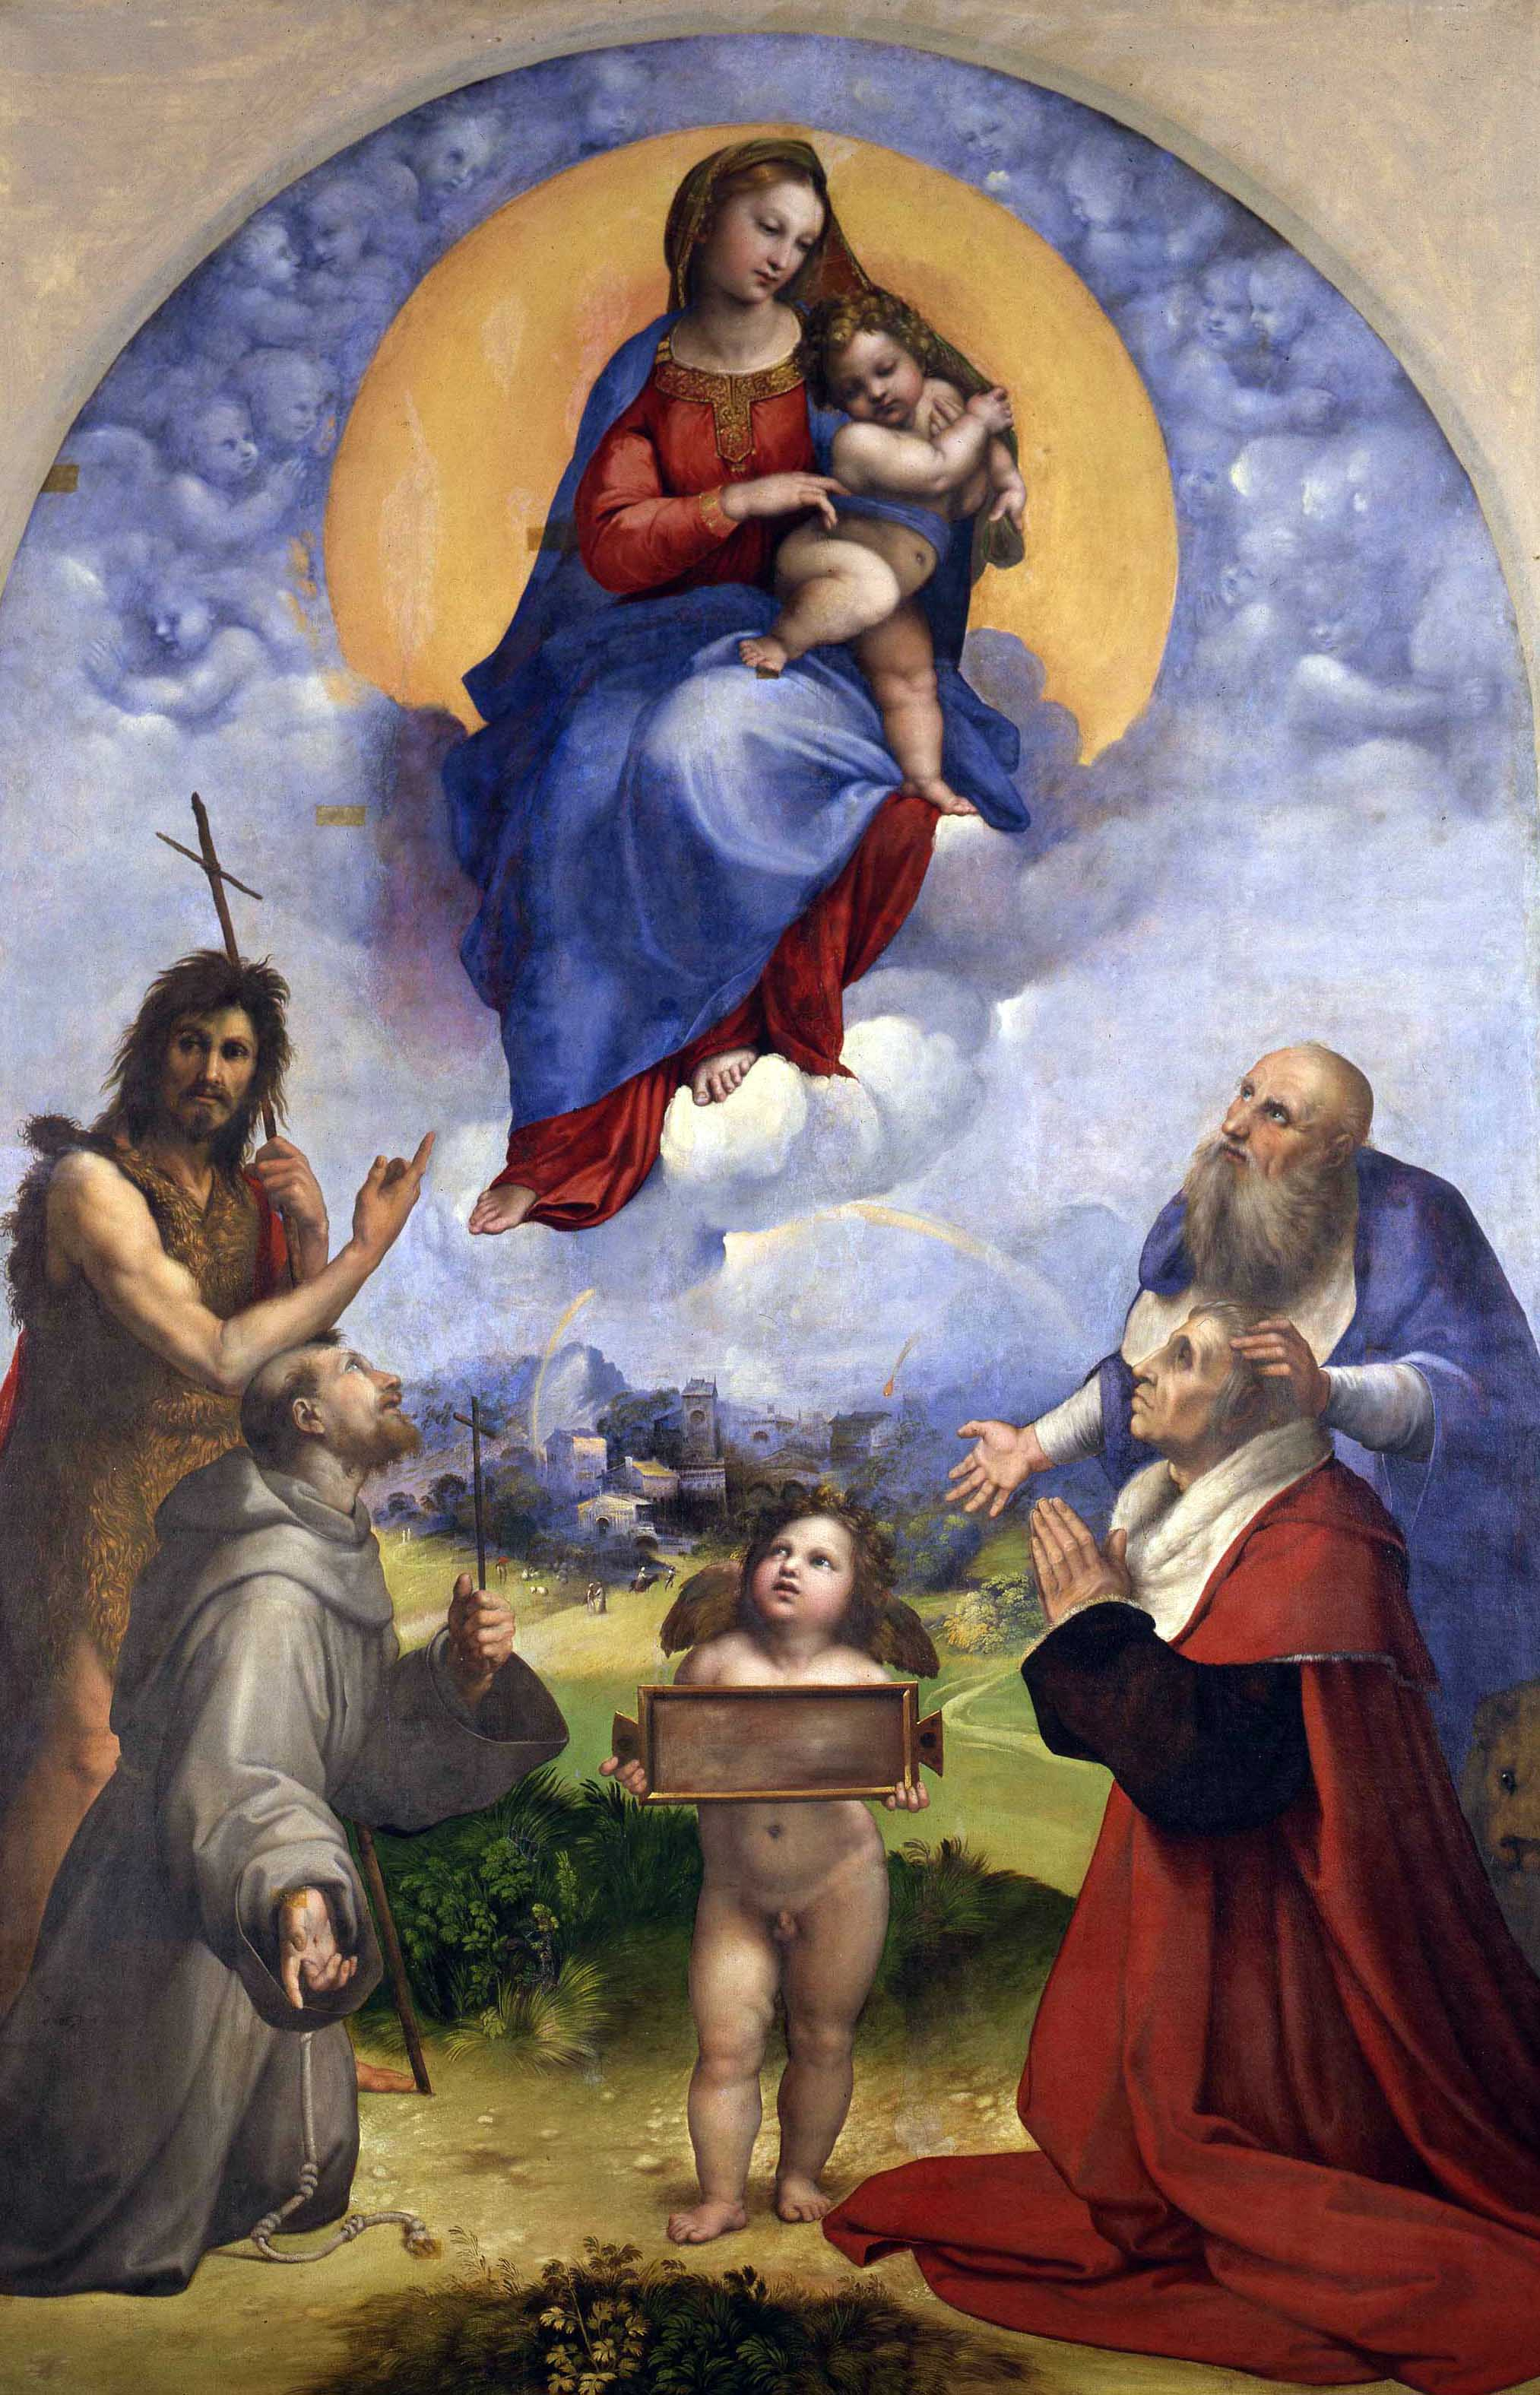 https://i2.wp.com/www.artapartofculture.net/new/wp-content/uploads/2011/08/1-Madonna-di-Foligno.jpg